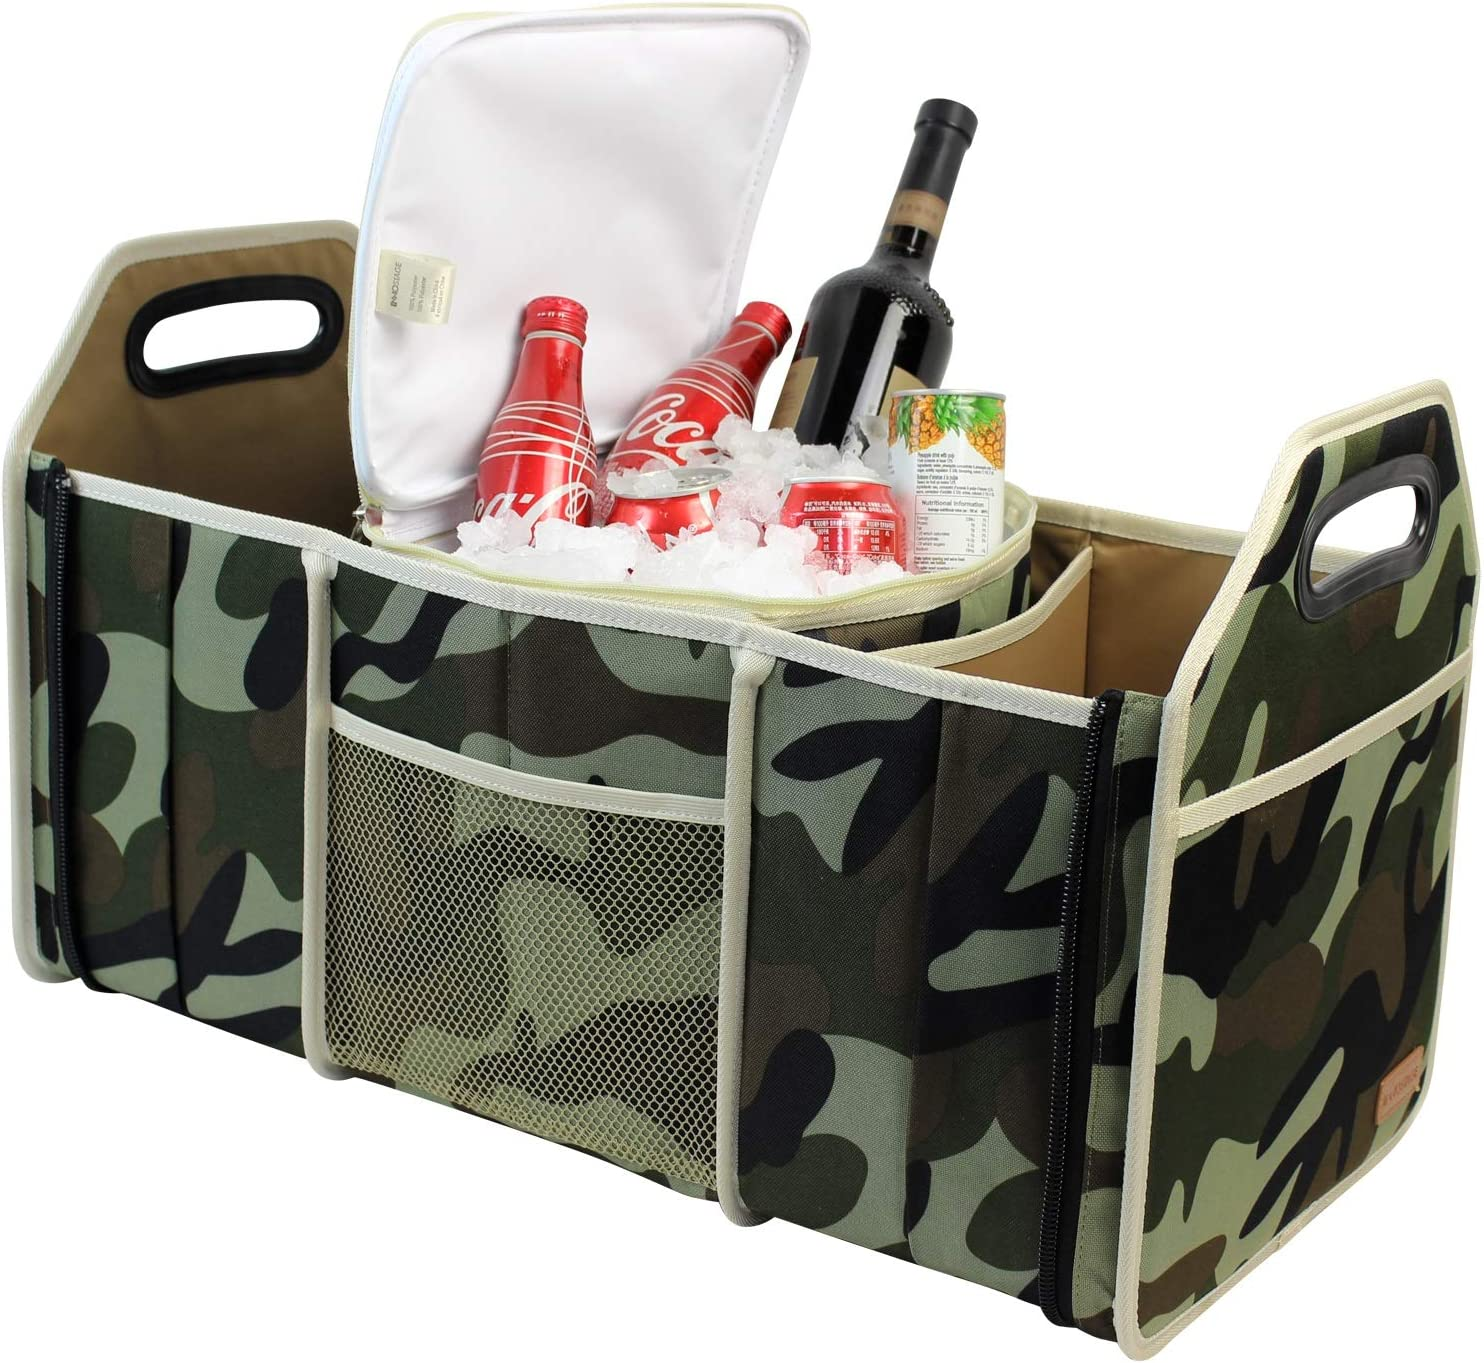 INNO STAGE Car Trunk Organizer, Collapsible Cargo Container Bin with Waterproof Cooler Carrier Bag for Front or Backseat Storage Camouflage